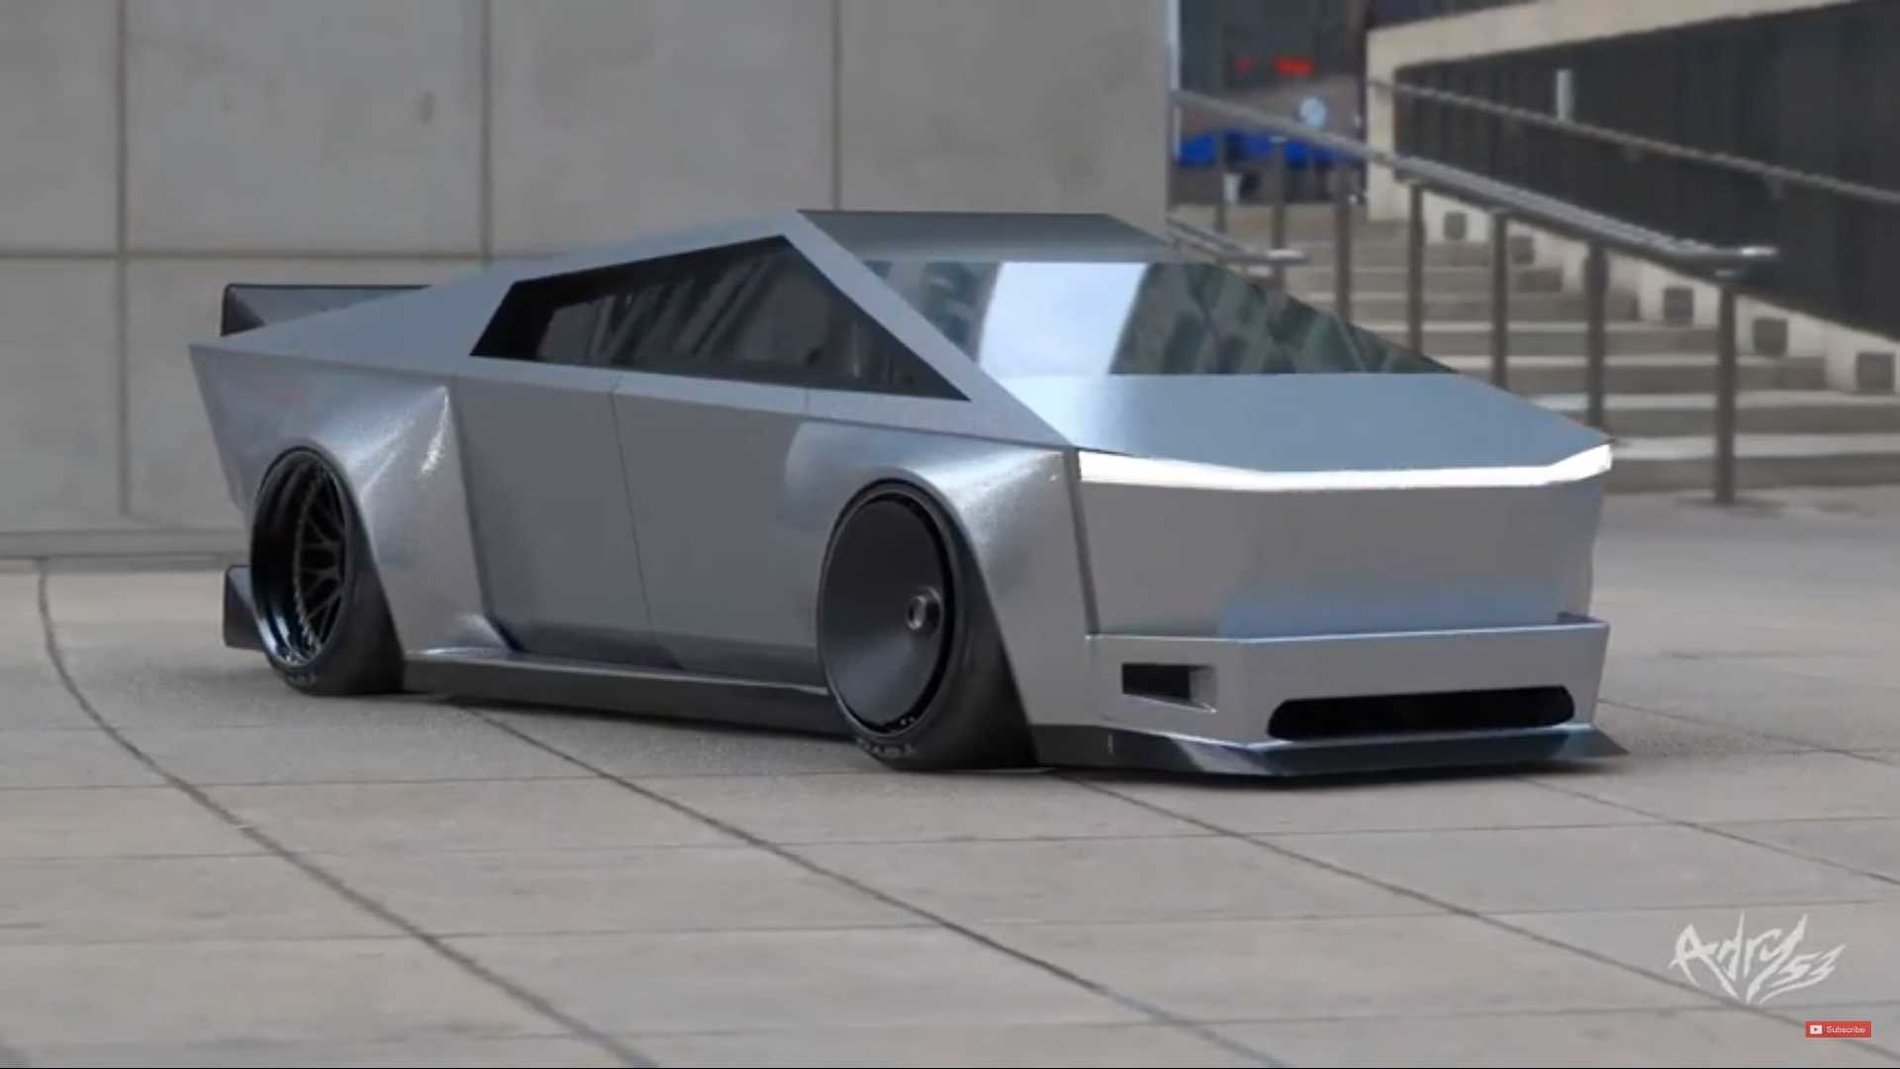 two-different-designers-present-the-same-idea-the-tesla-cybertruck-widebody.jpg